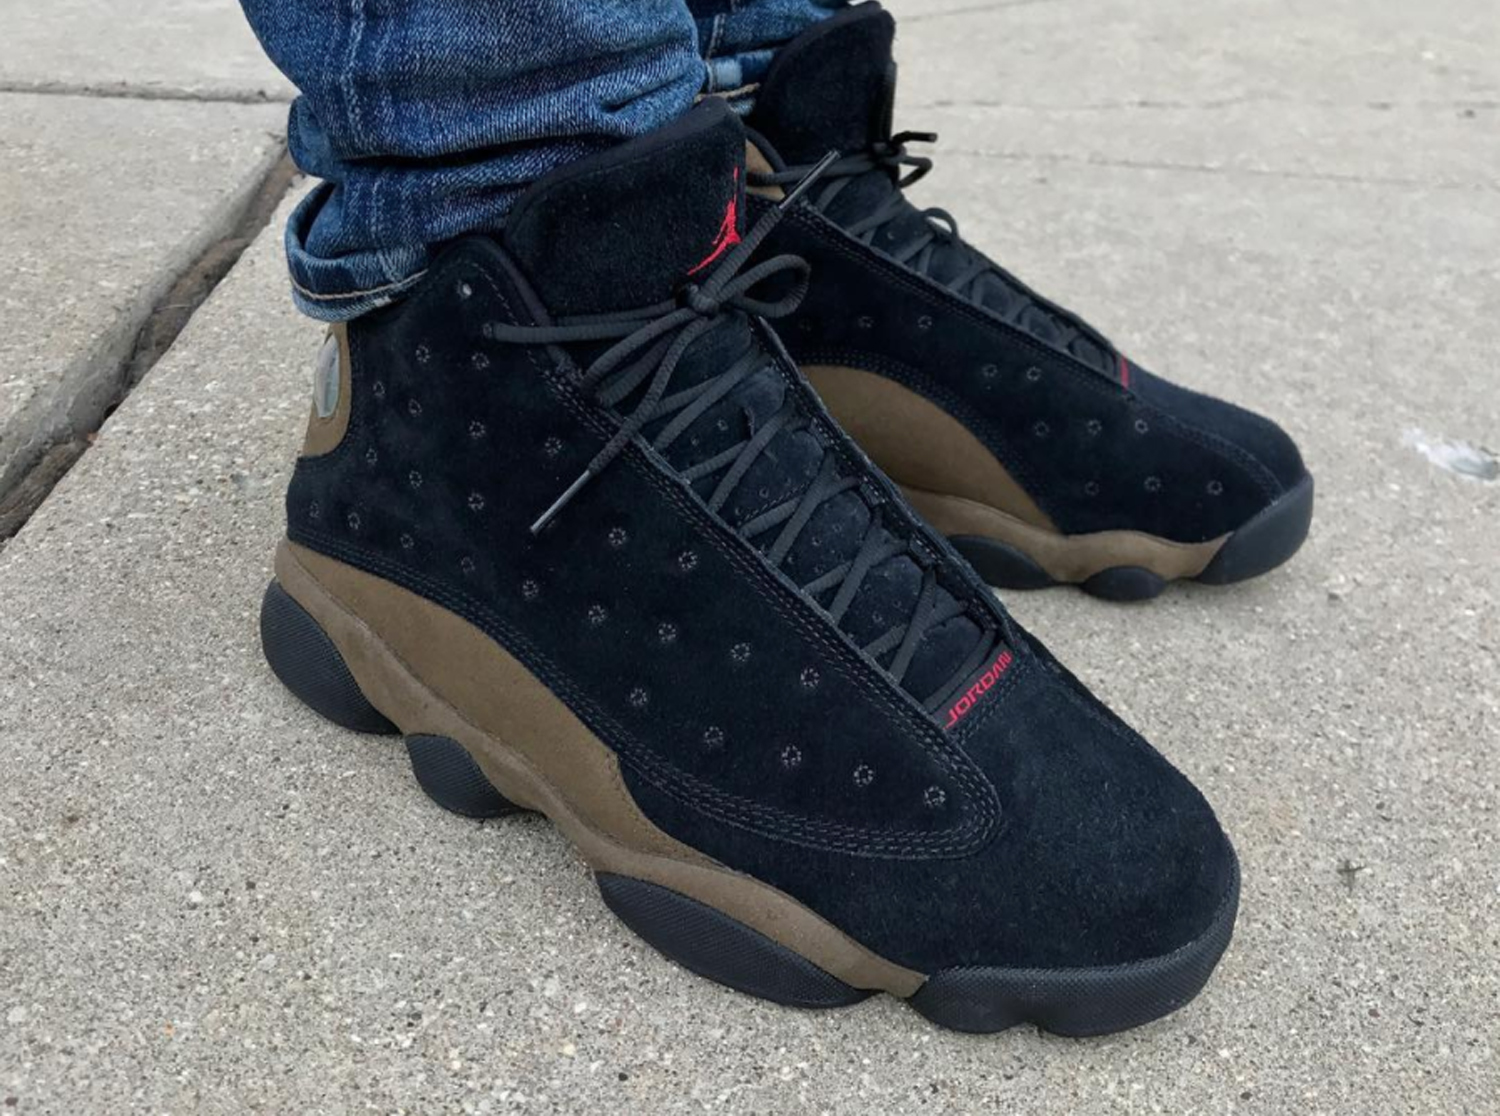 Air-Jordan-13-Retro-Olive-2018-On-Foot-2